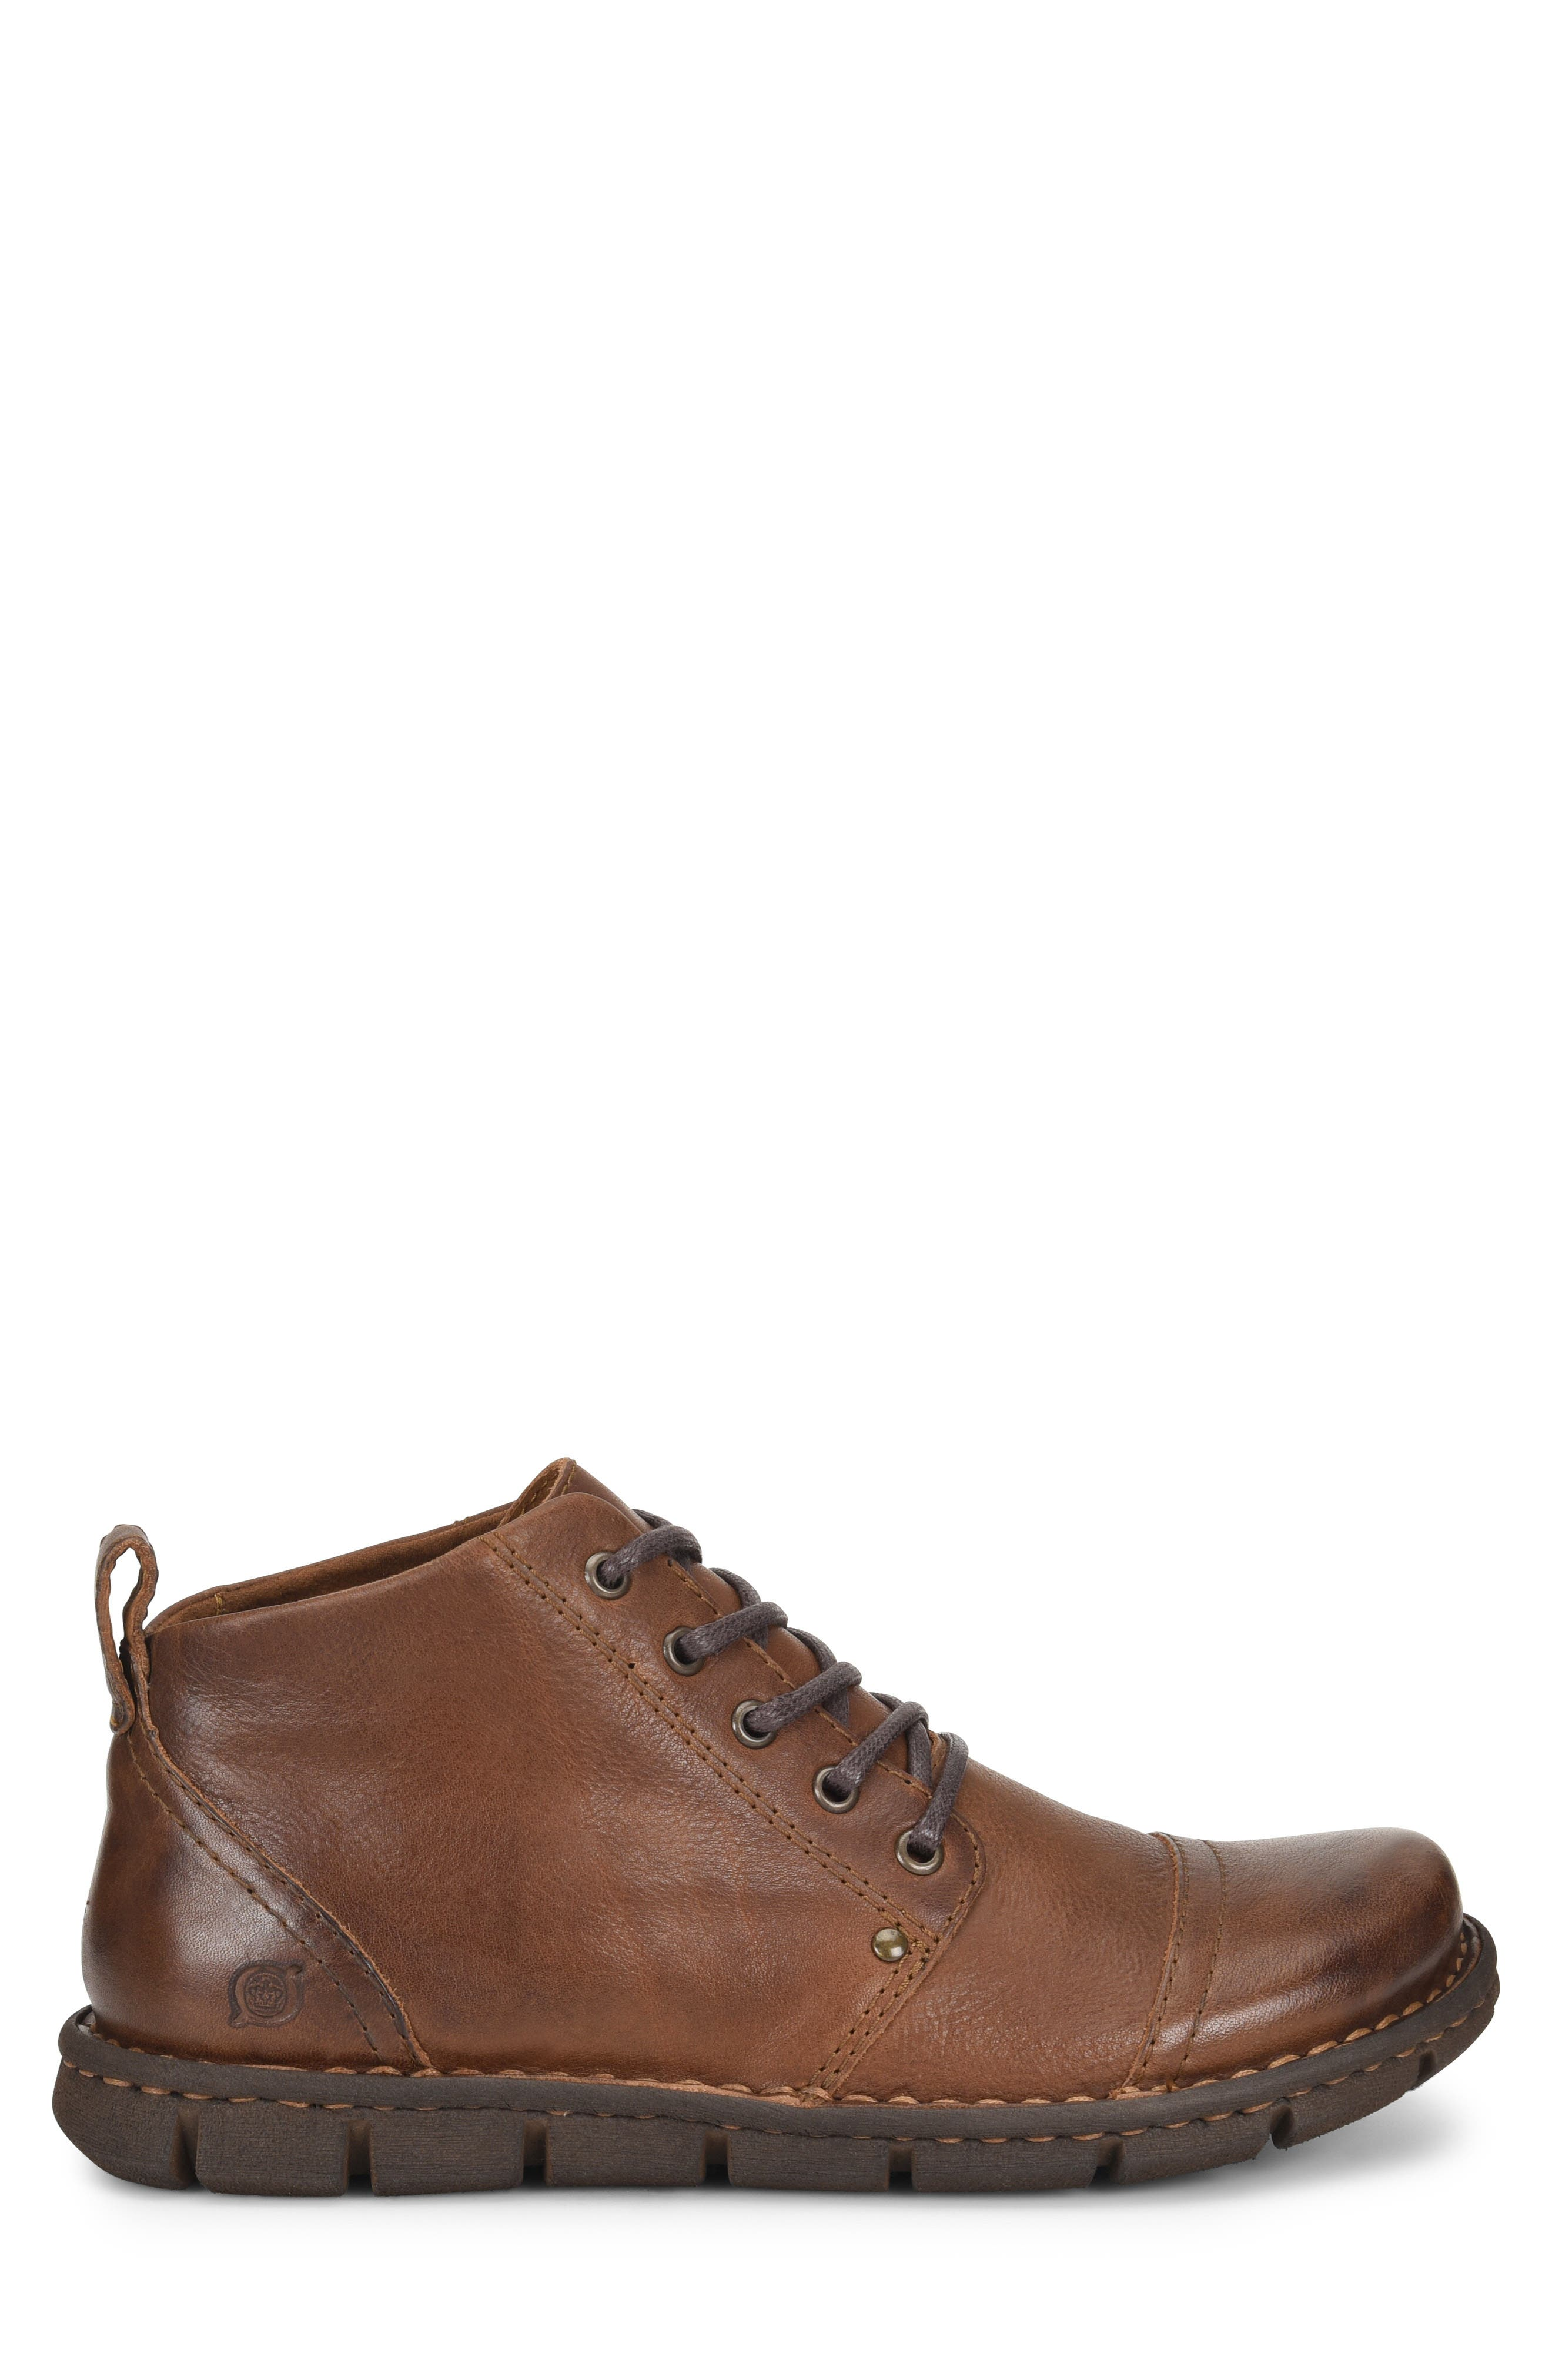 Boulder Cap Toe Boot,                             Alternate thumbnail 3, color,                             BROWN LEATHER